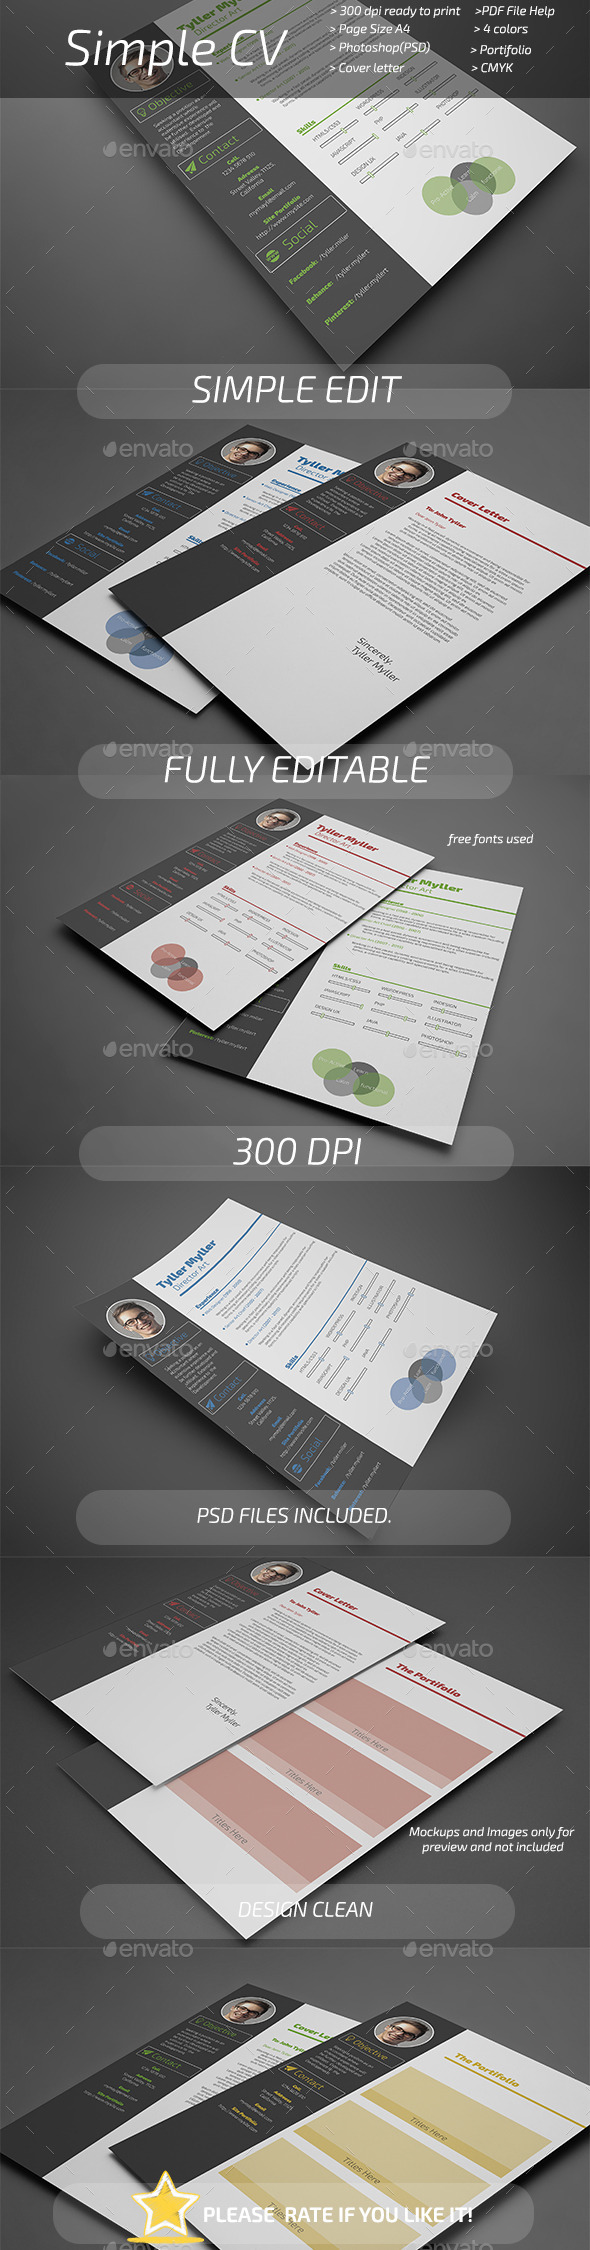 GraphicRiver Simple CV 10899246